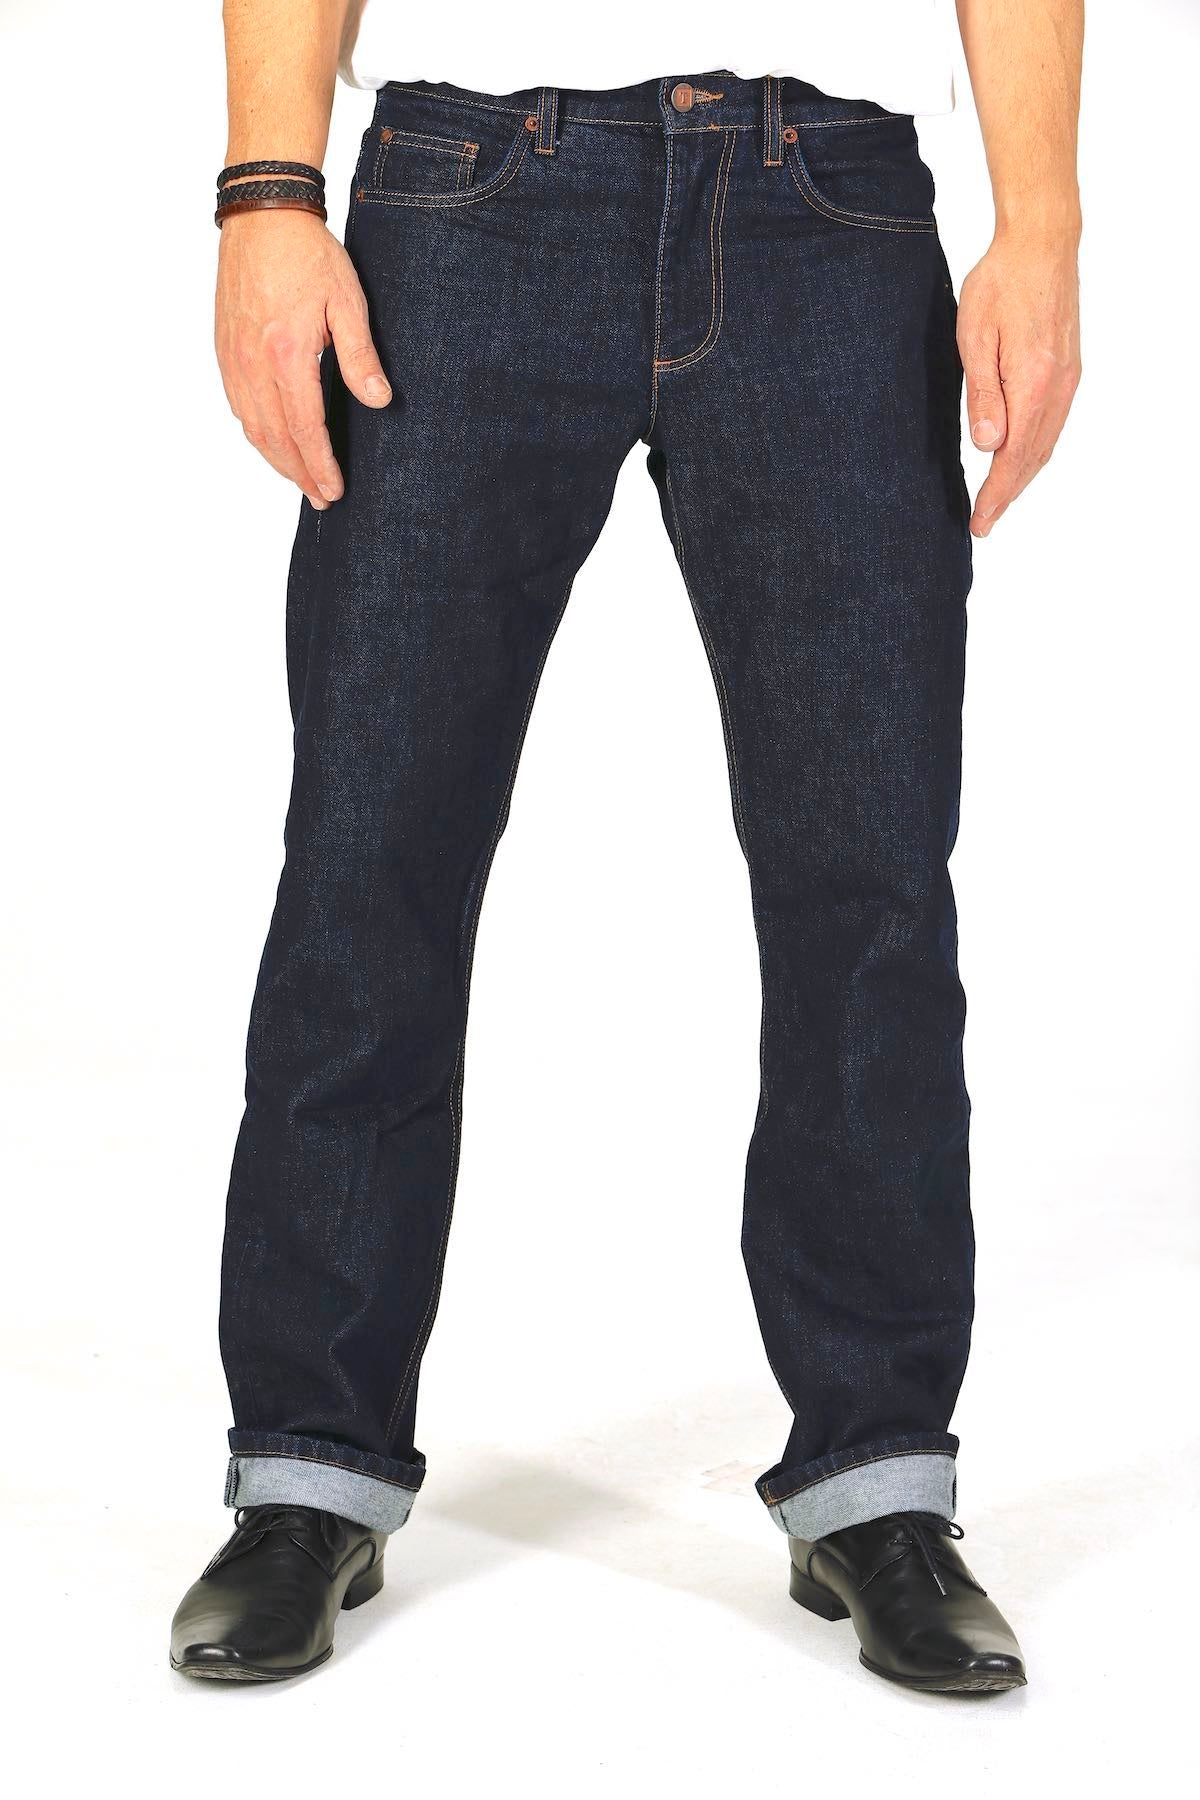 Straight Fit - Dark Wash Herren-Jeans